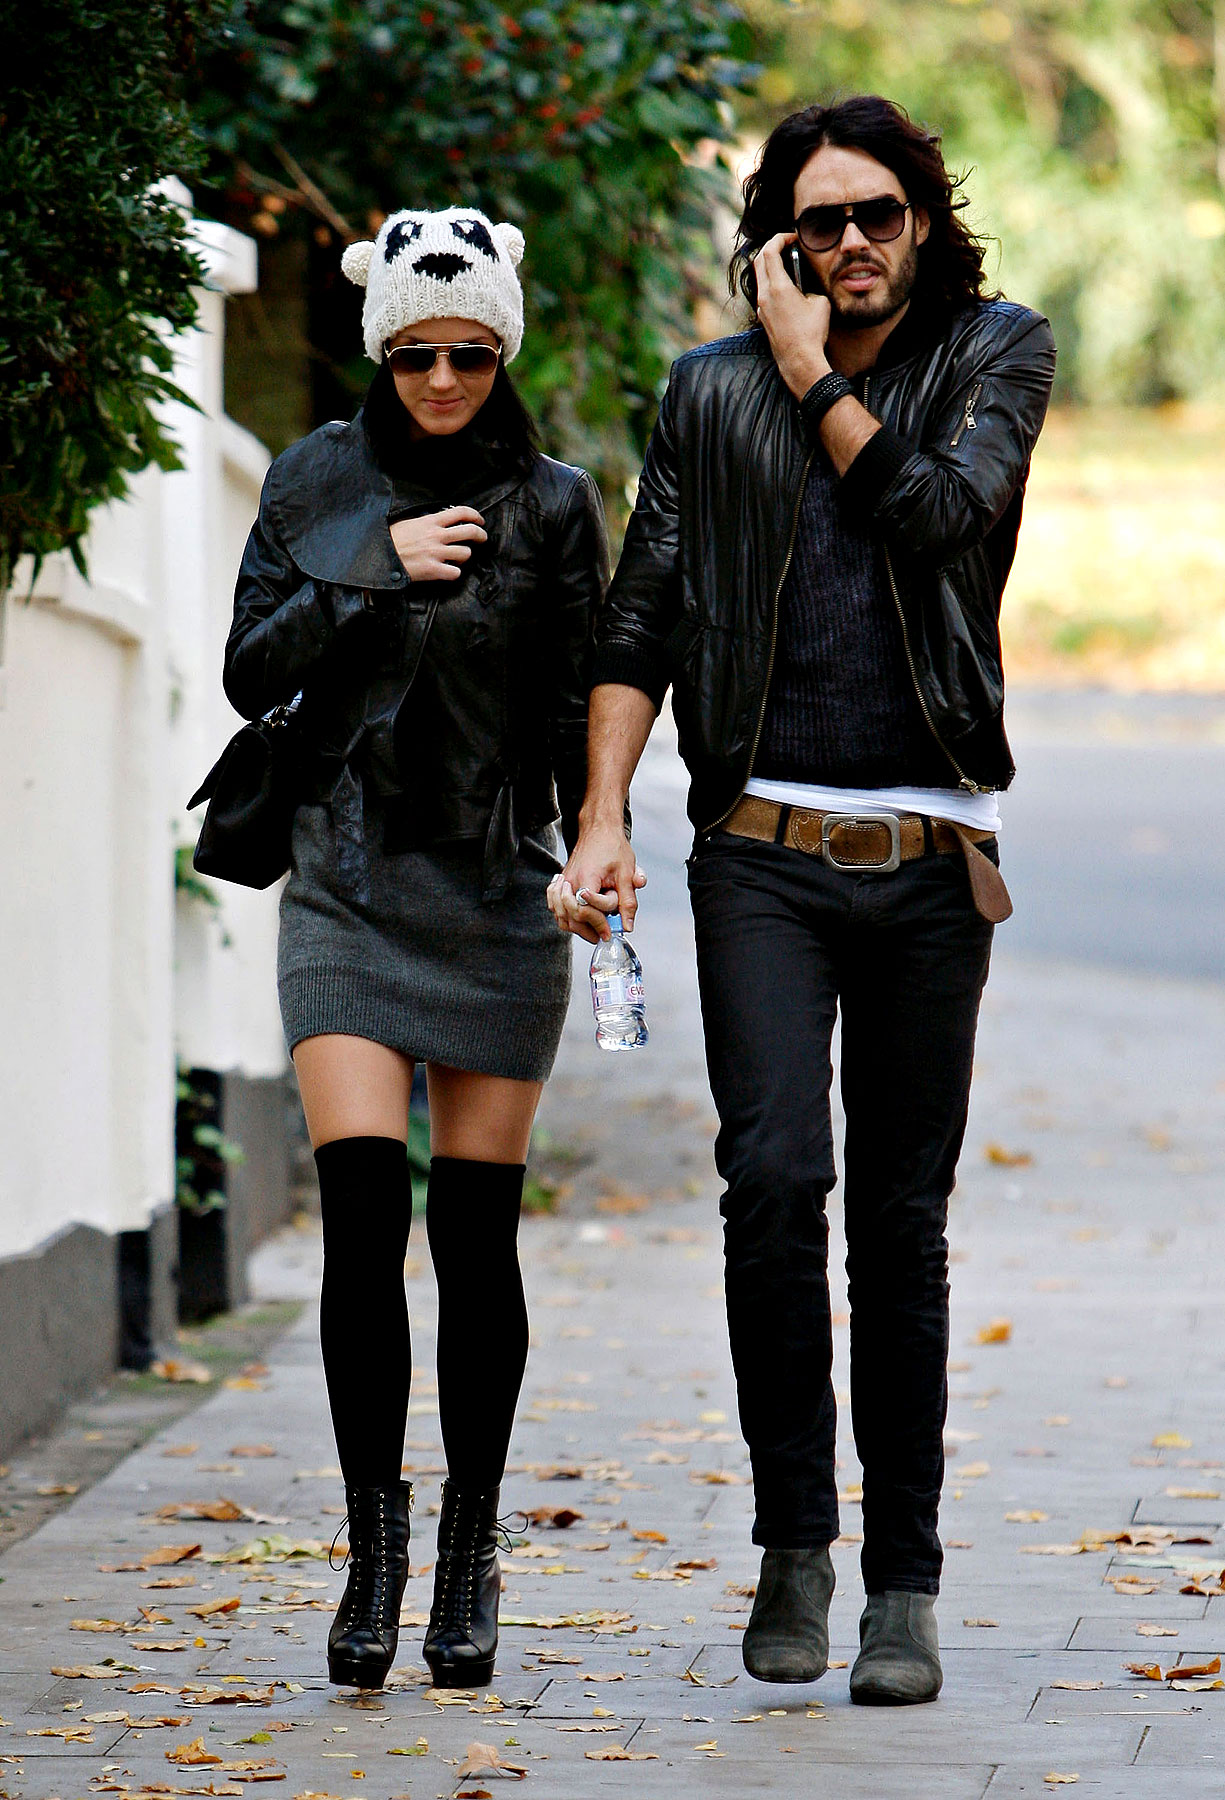 PHOTO GALLERY: Katy Perry & Russell Brand Stroll London